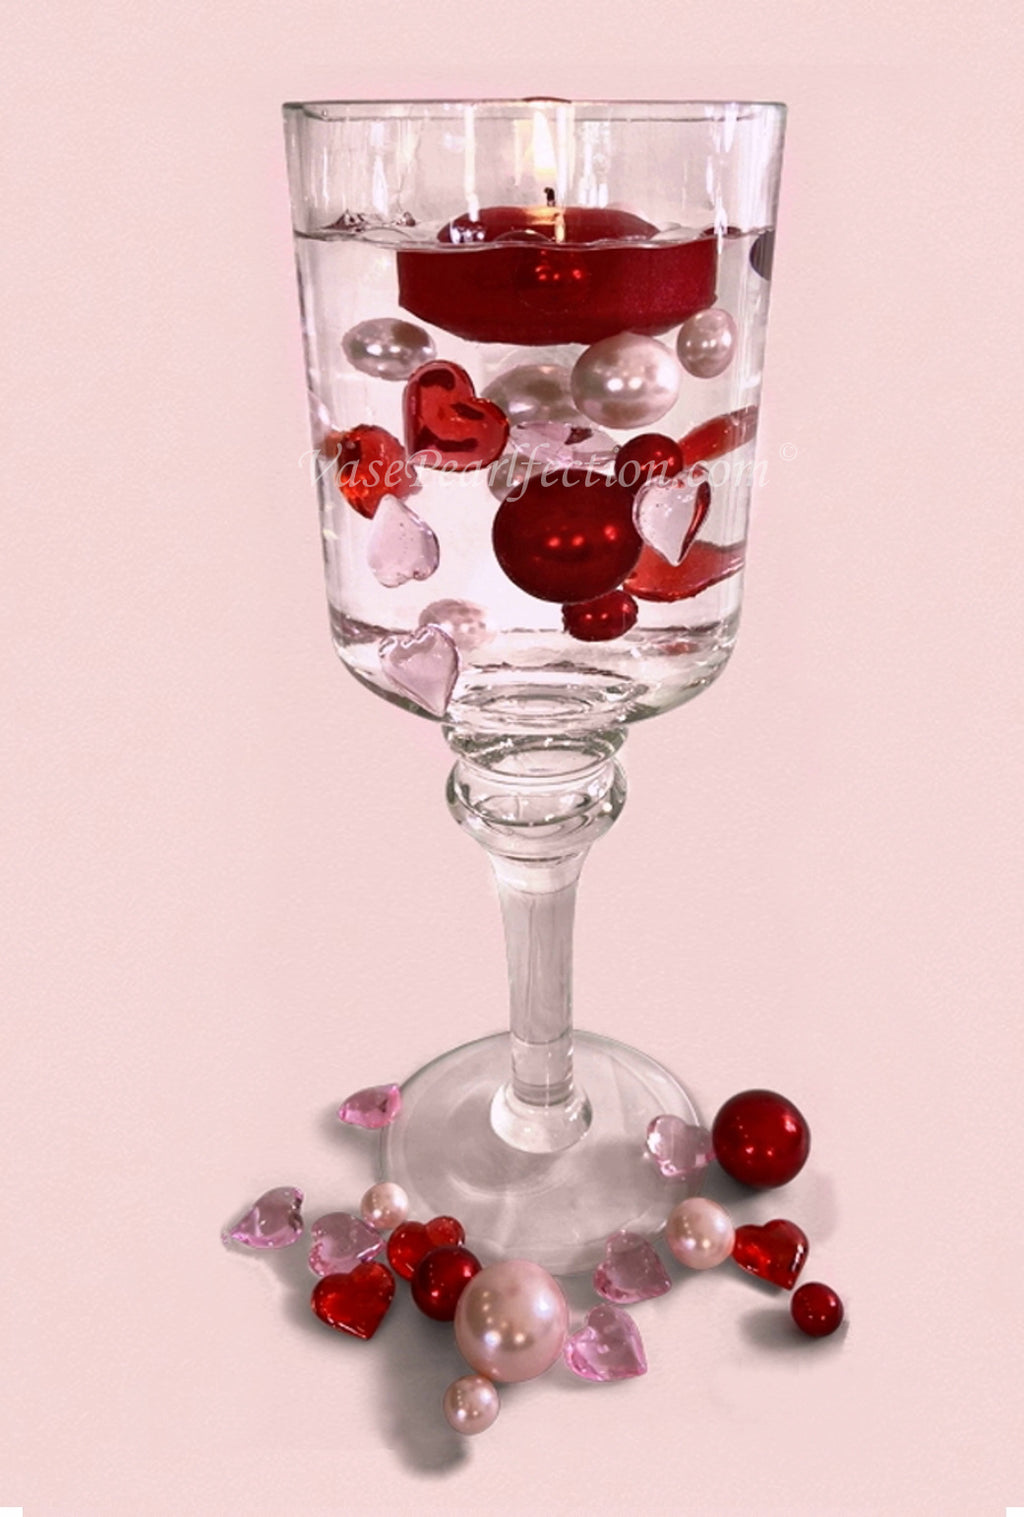 Floating Valentine No Hole Red & Light Pink Pearls with Matching Heart Gems - Jumbo/Assorted Sizes Vase Fillers for Vase Decorations and Table Scatter